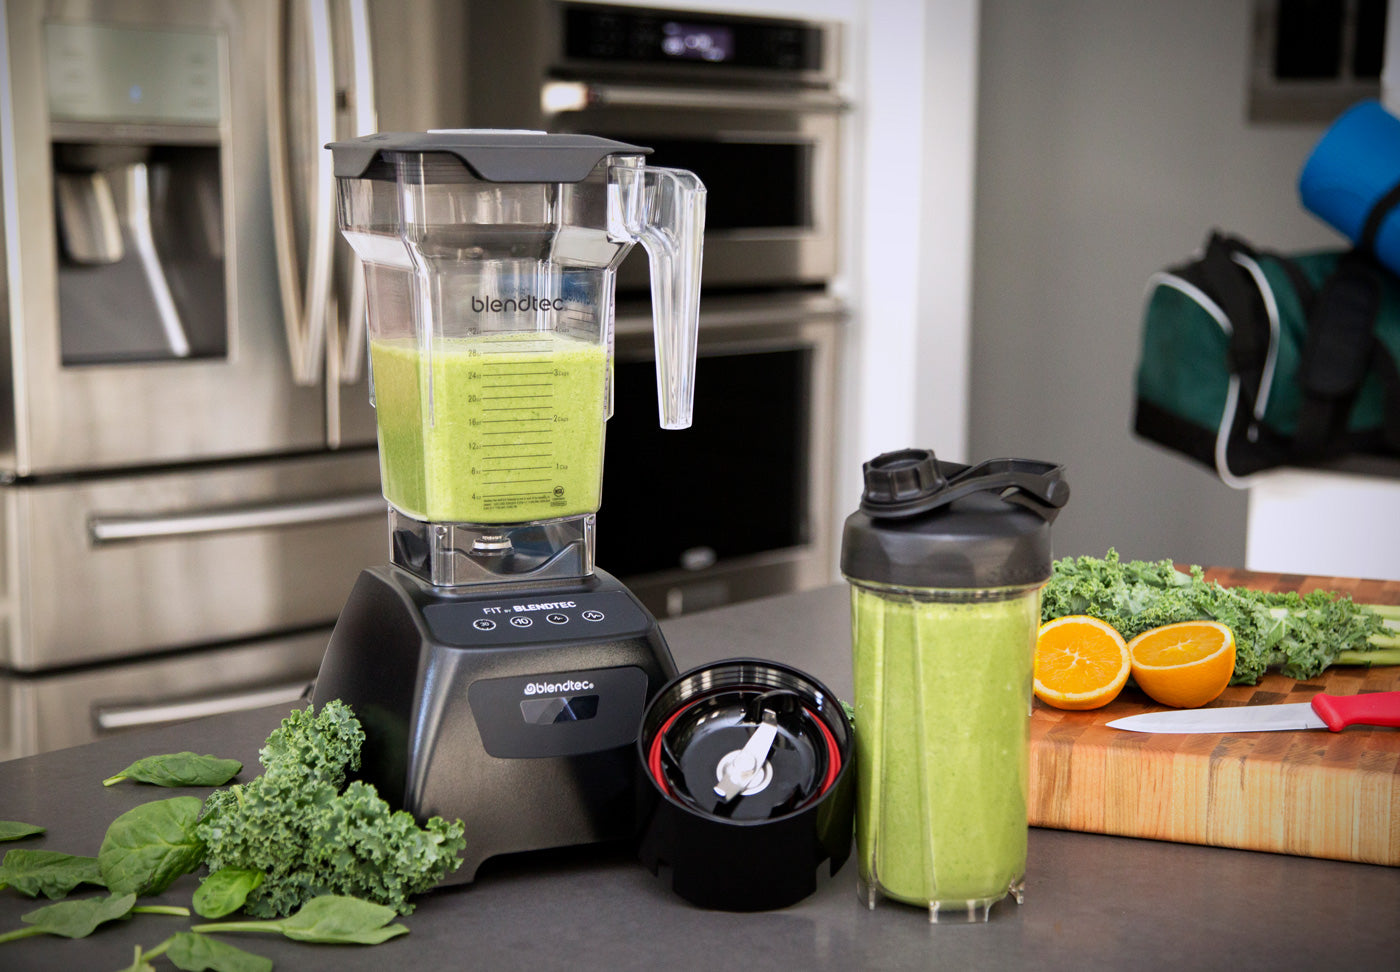 Blendtec Go Green smoothie